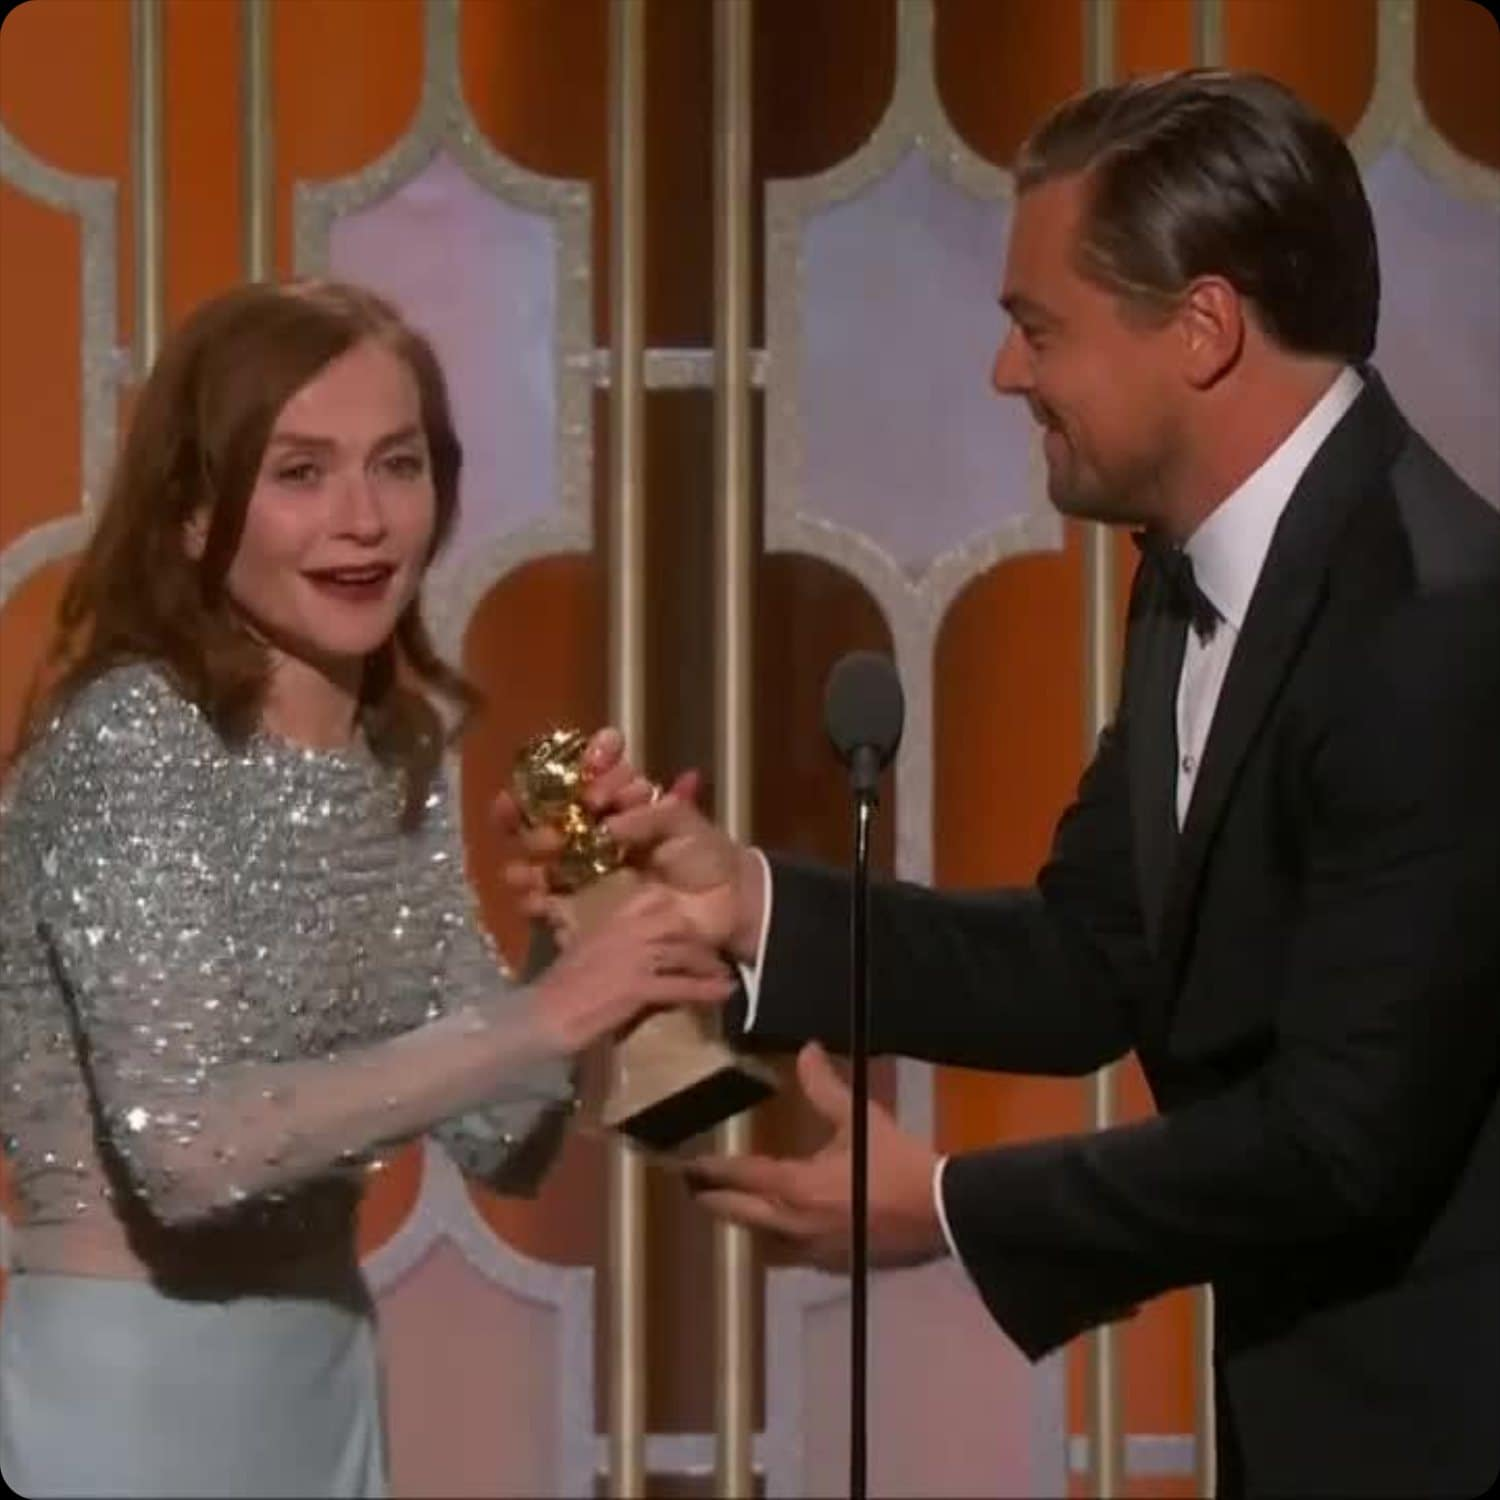 Isabelle Huppert receives Golden Globe from Leonardo DiCaprio